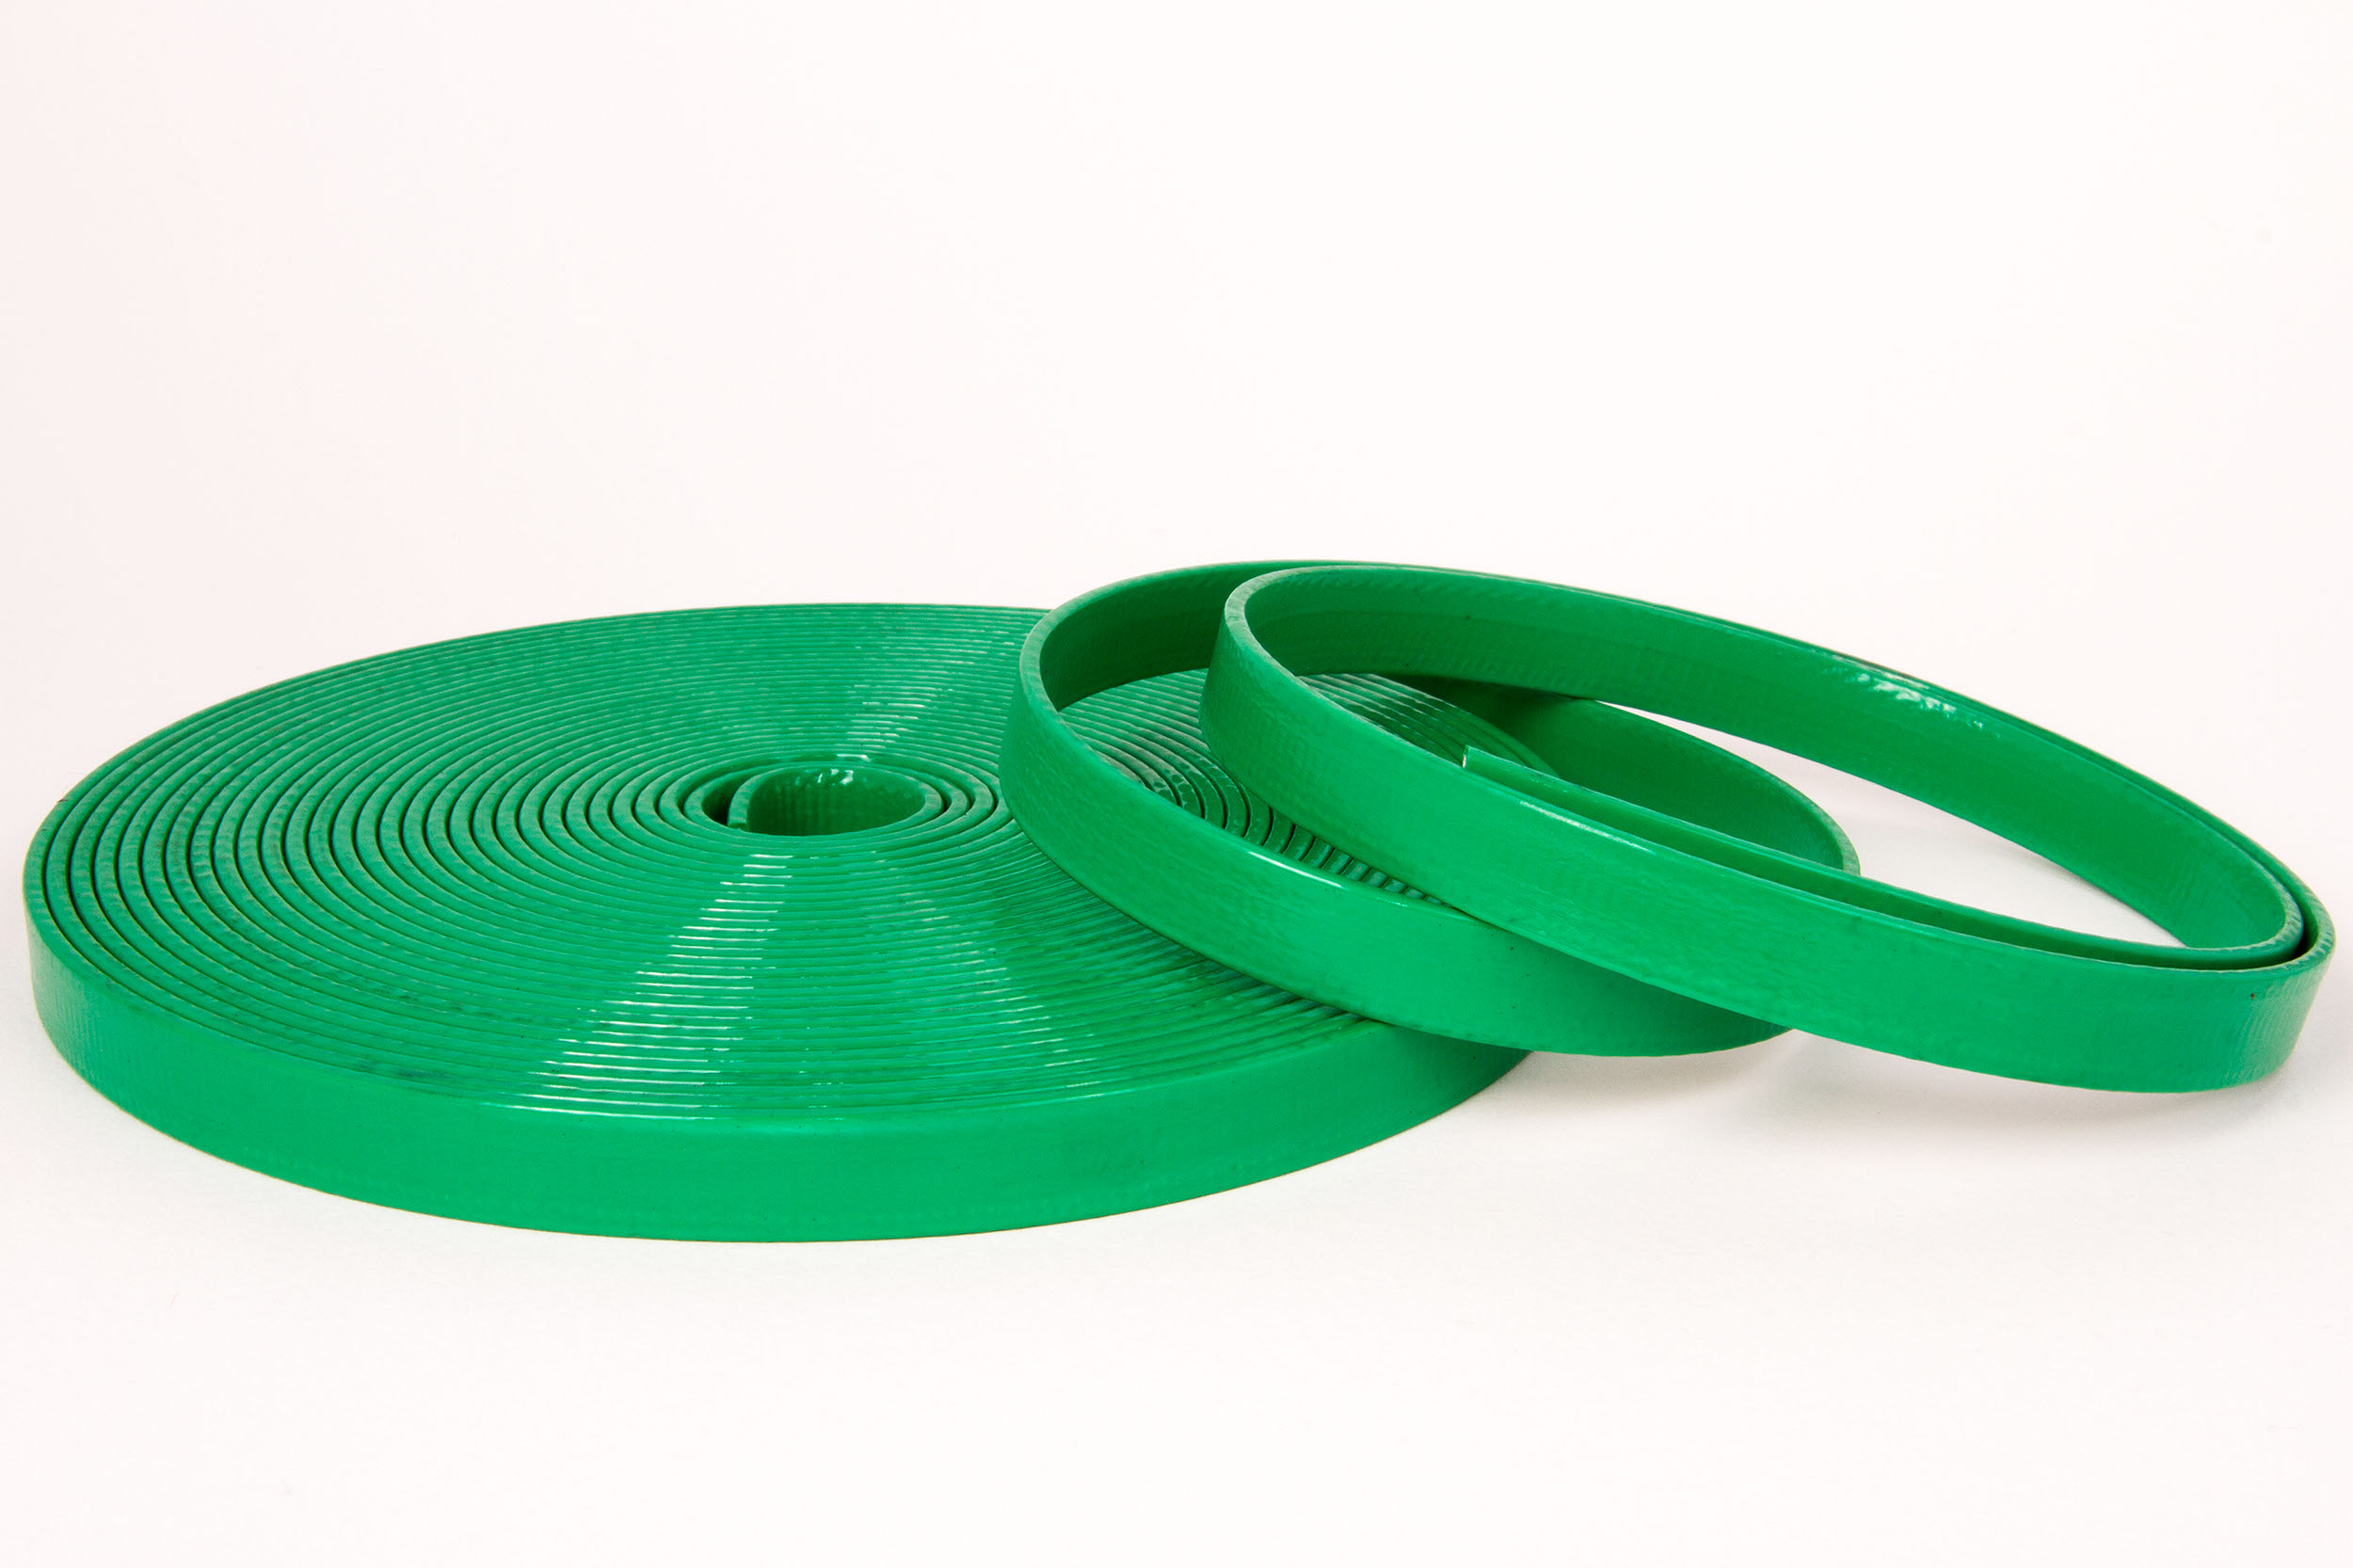 PVC-Coated-Webbing-12mm-Green 02.jpg